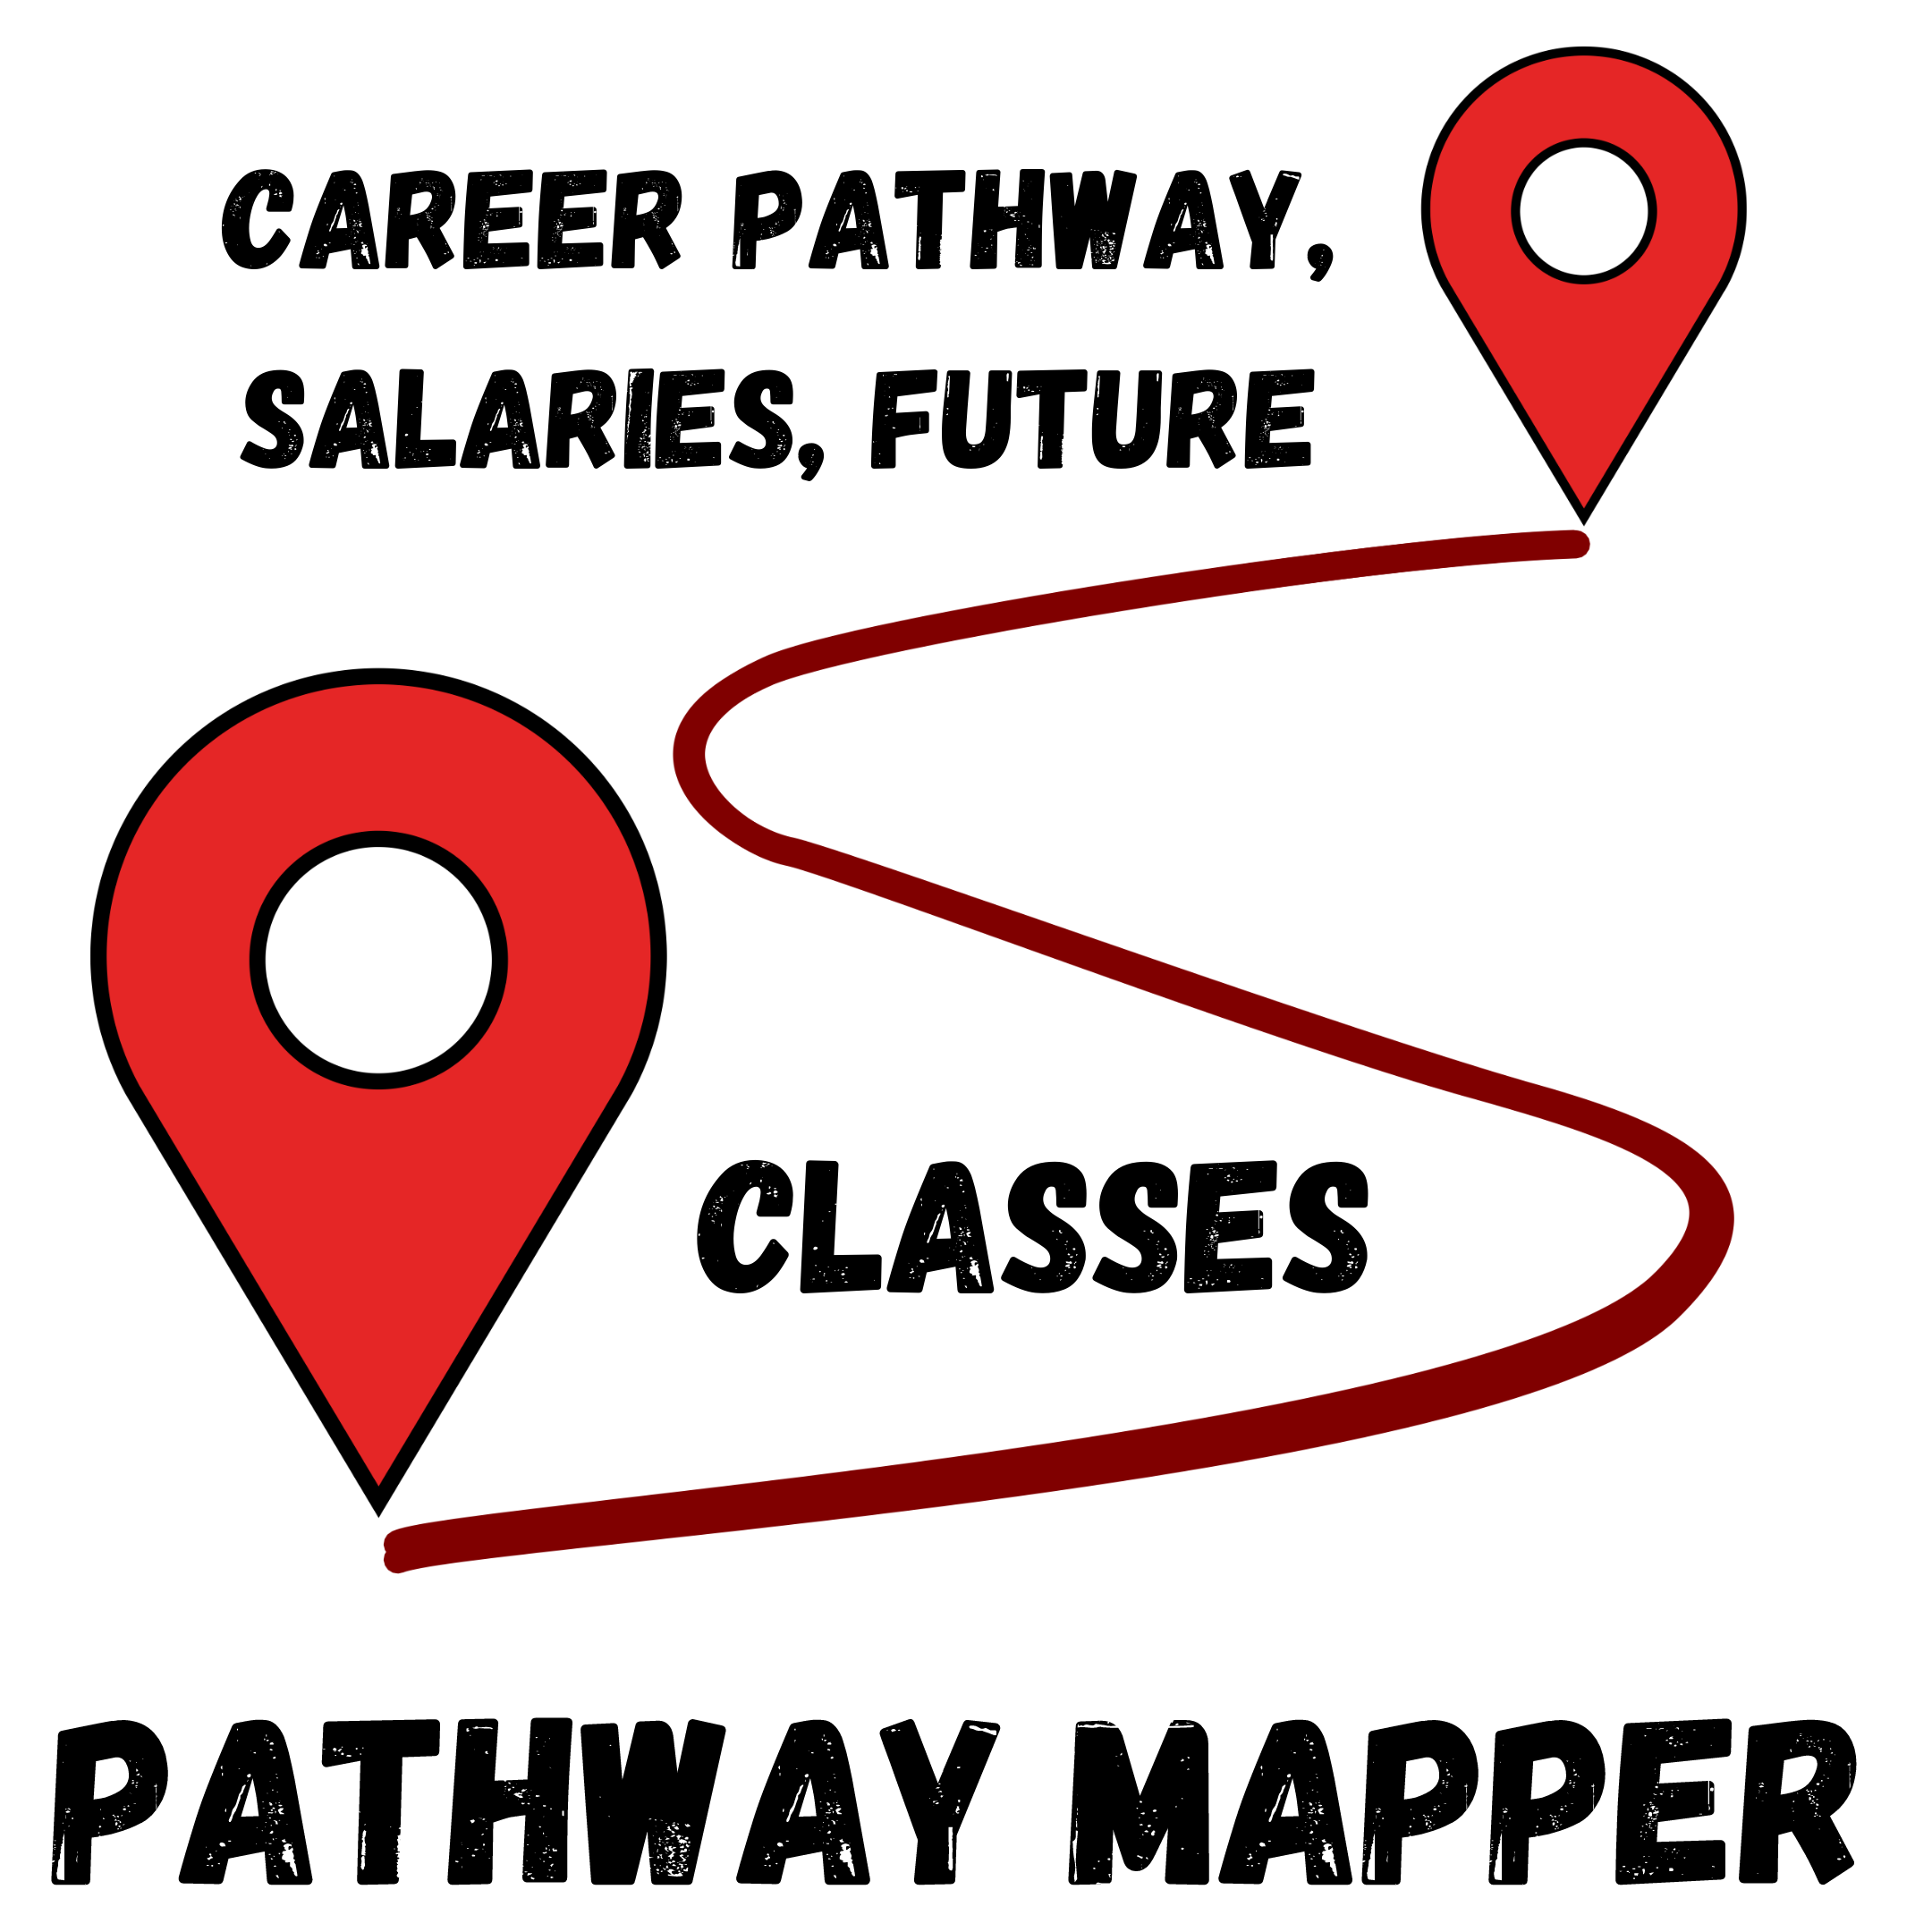 Palomar Pathways Mapper - Classes, Programs Descriptions, Salaries